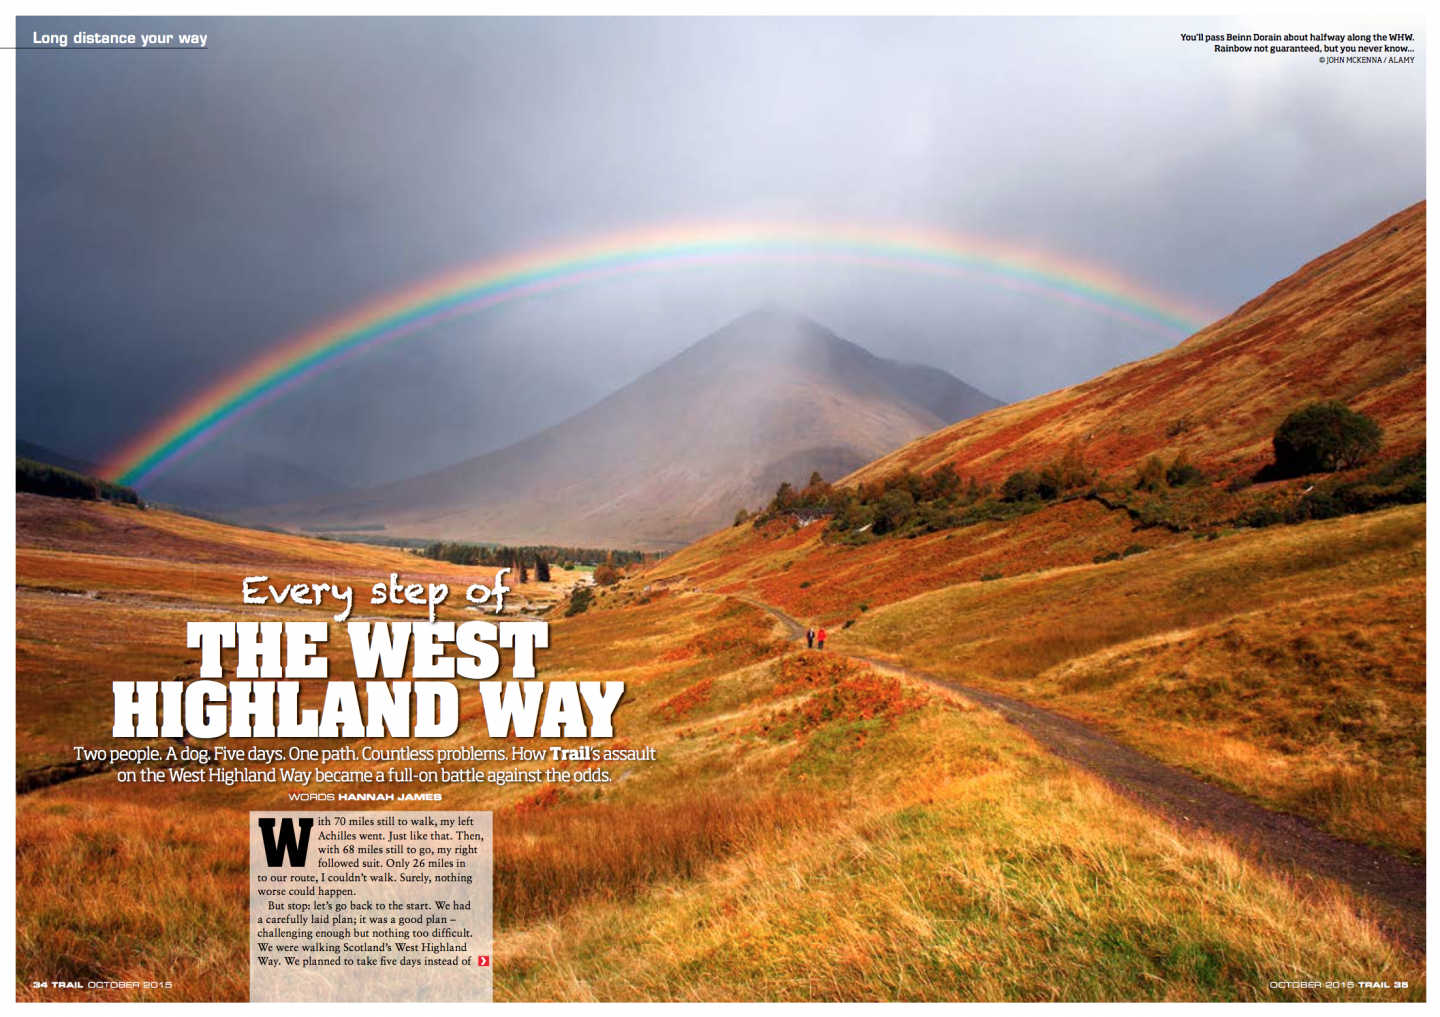 The West Highland Way || Trail Magazine || September 2015 || Toughest walk of my life